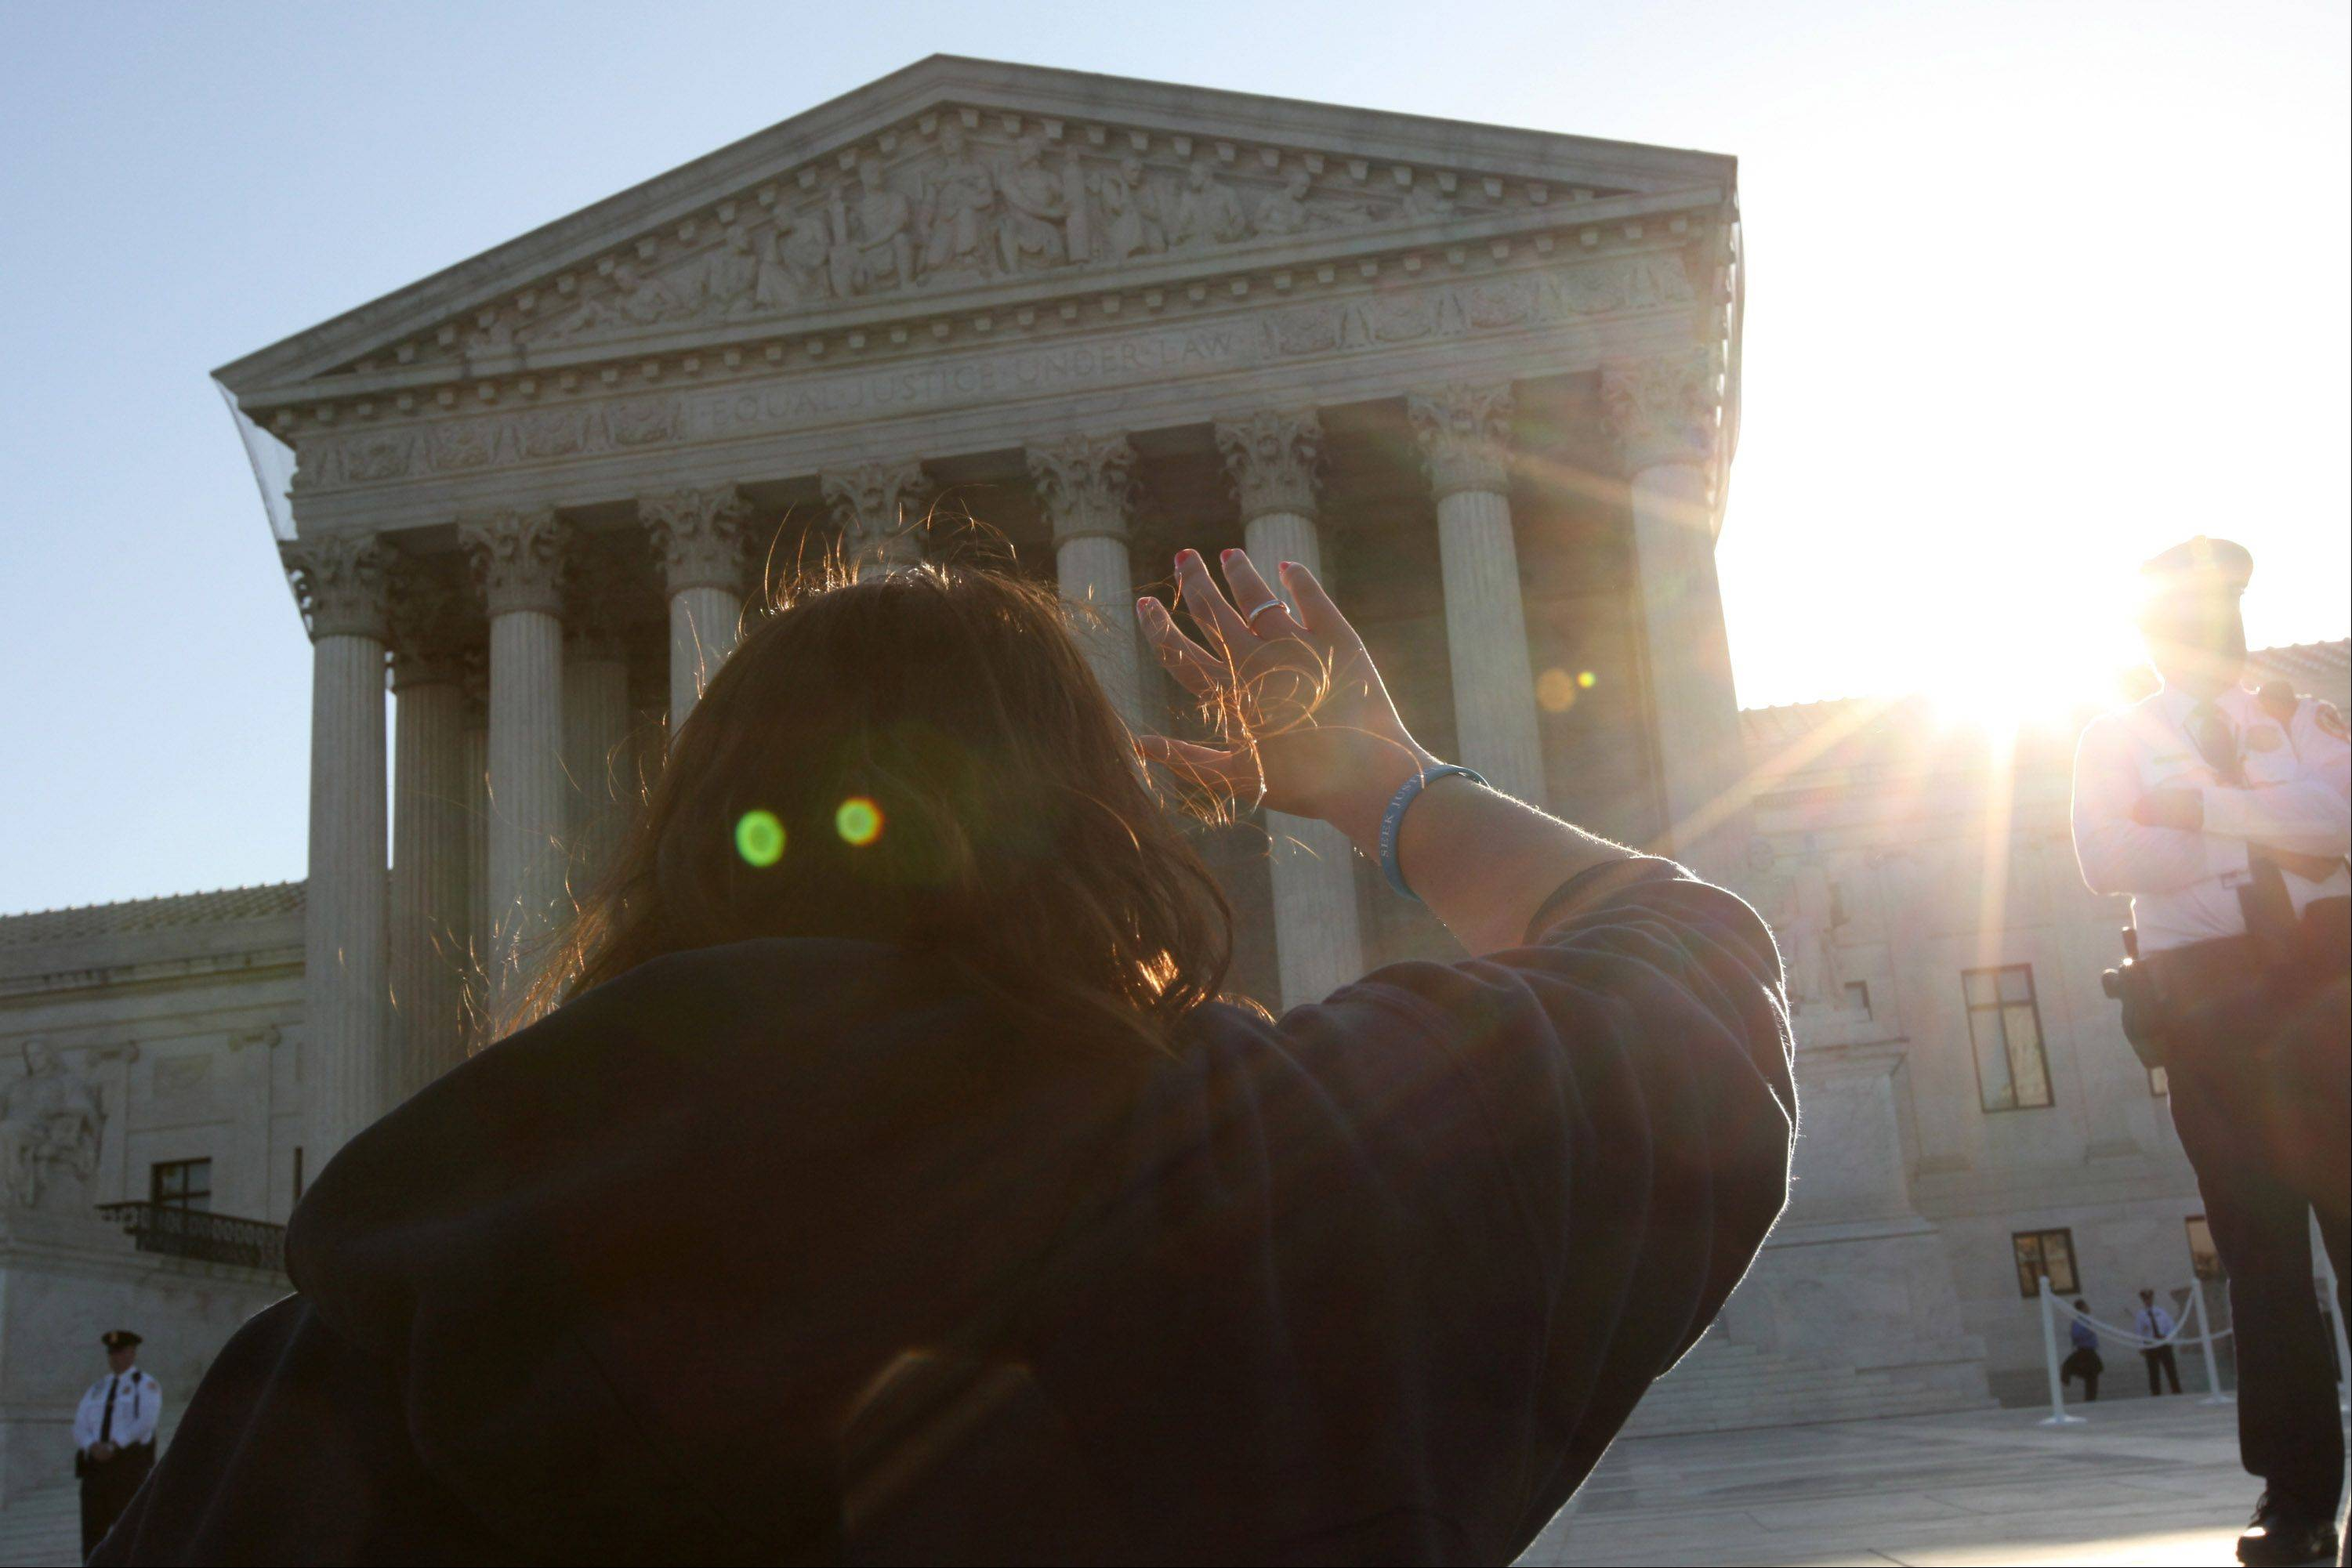 A demonstrator prays outside the Supreme Court building in Washington, D.C., U.S., on Monday, March 26, 2012. The Supreme Court opens today its historic review of President Barack Obama's health-care law, three days of arguments that might result in the president's premier legislative achievement being found unconstitutional in the middle of his re-election campaign.